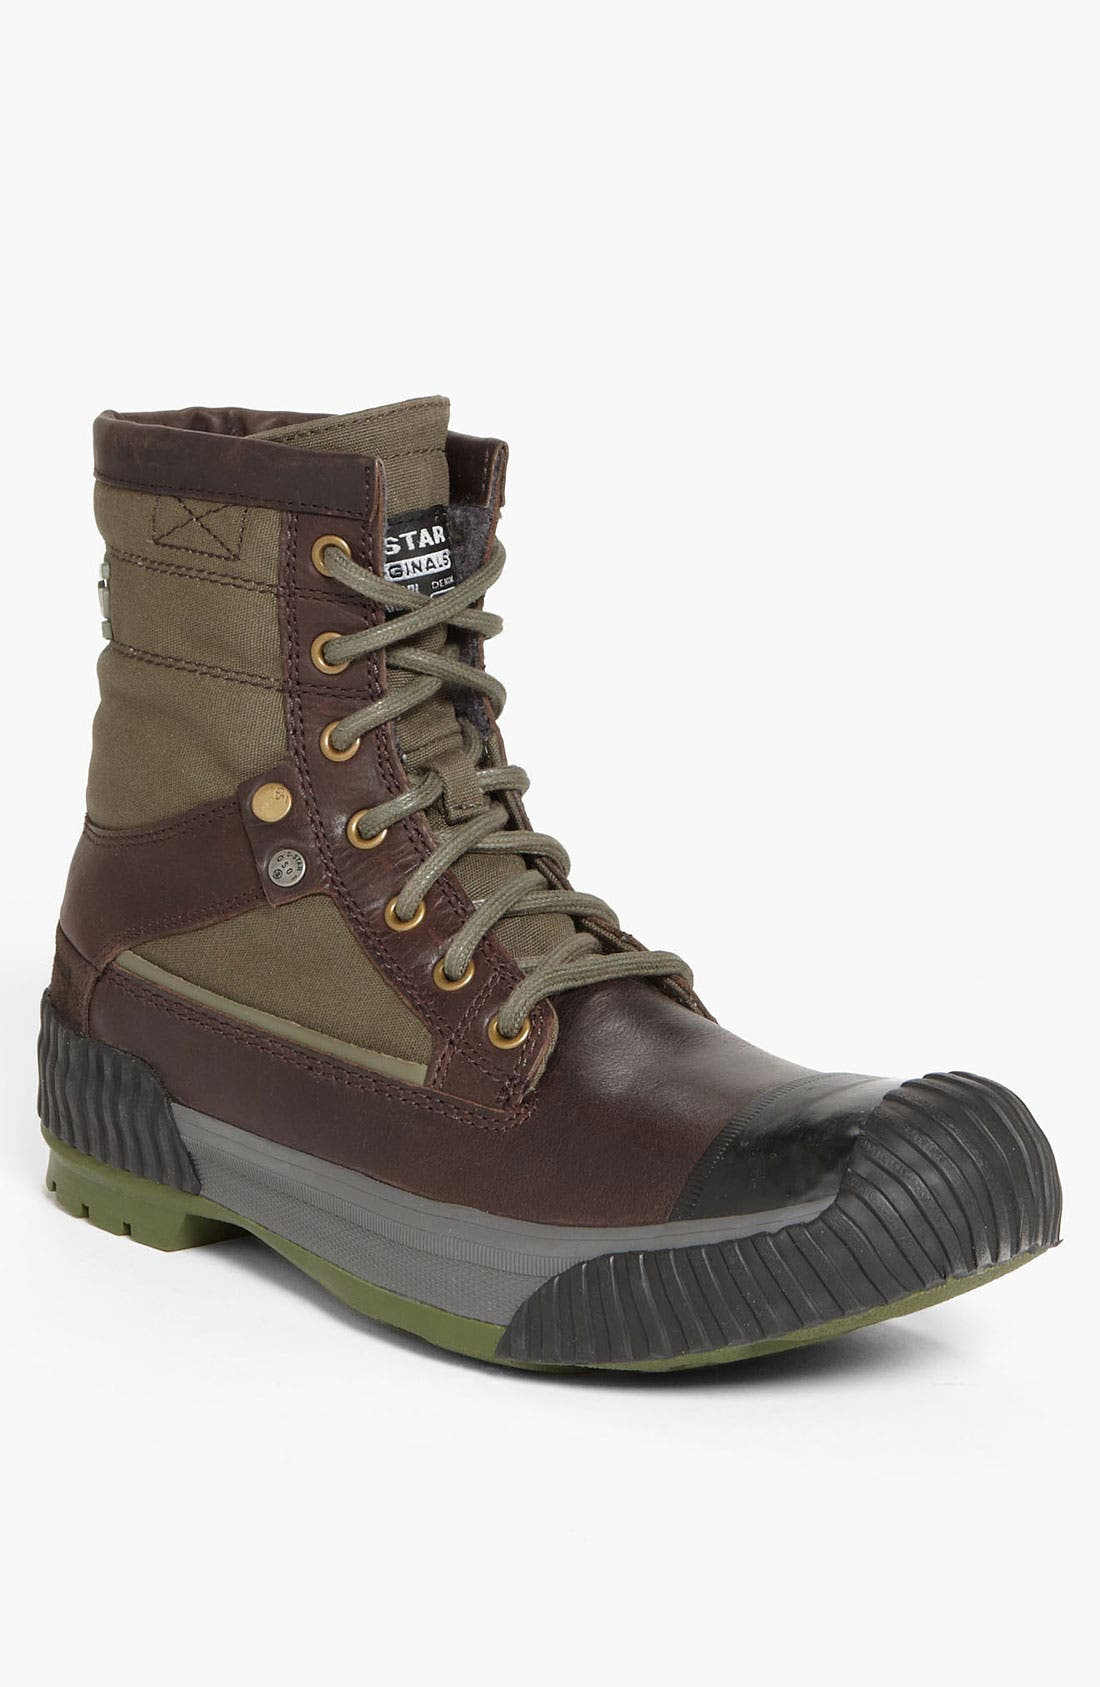 Main Image - G-Star Raw 'Marker Mix' Boot